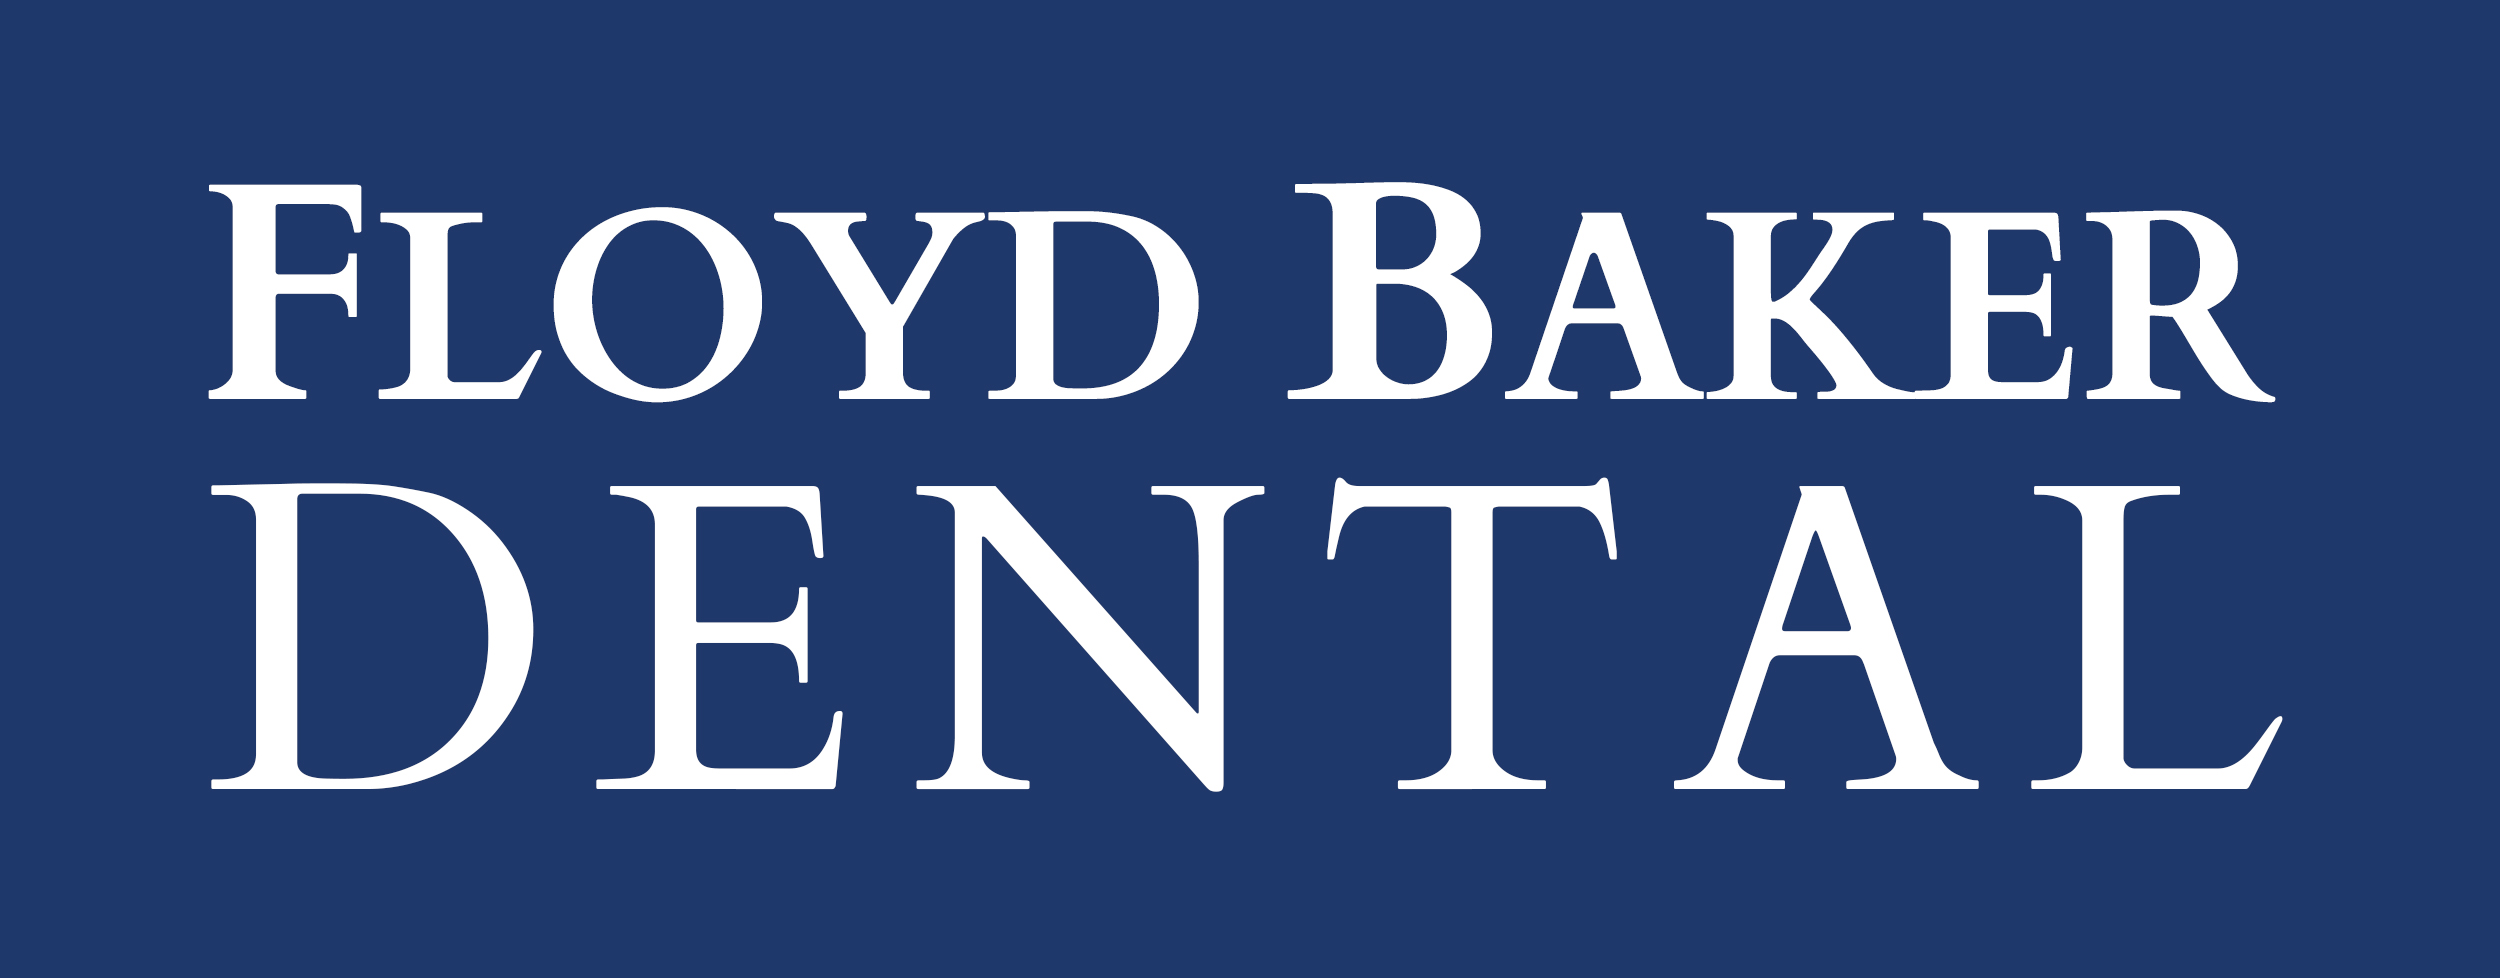 Floyd Baker Dental - Gaffney, SC Dentist